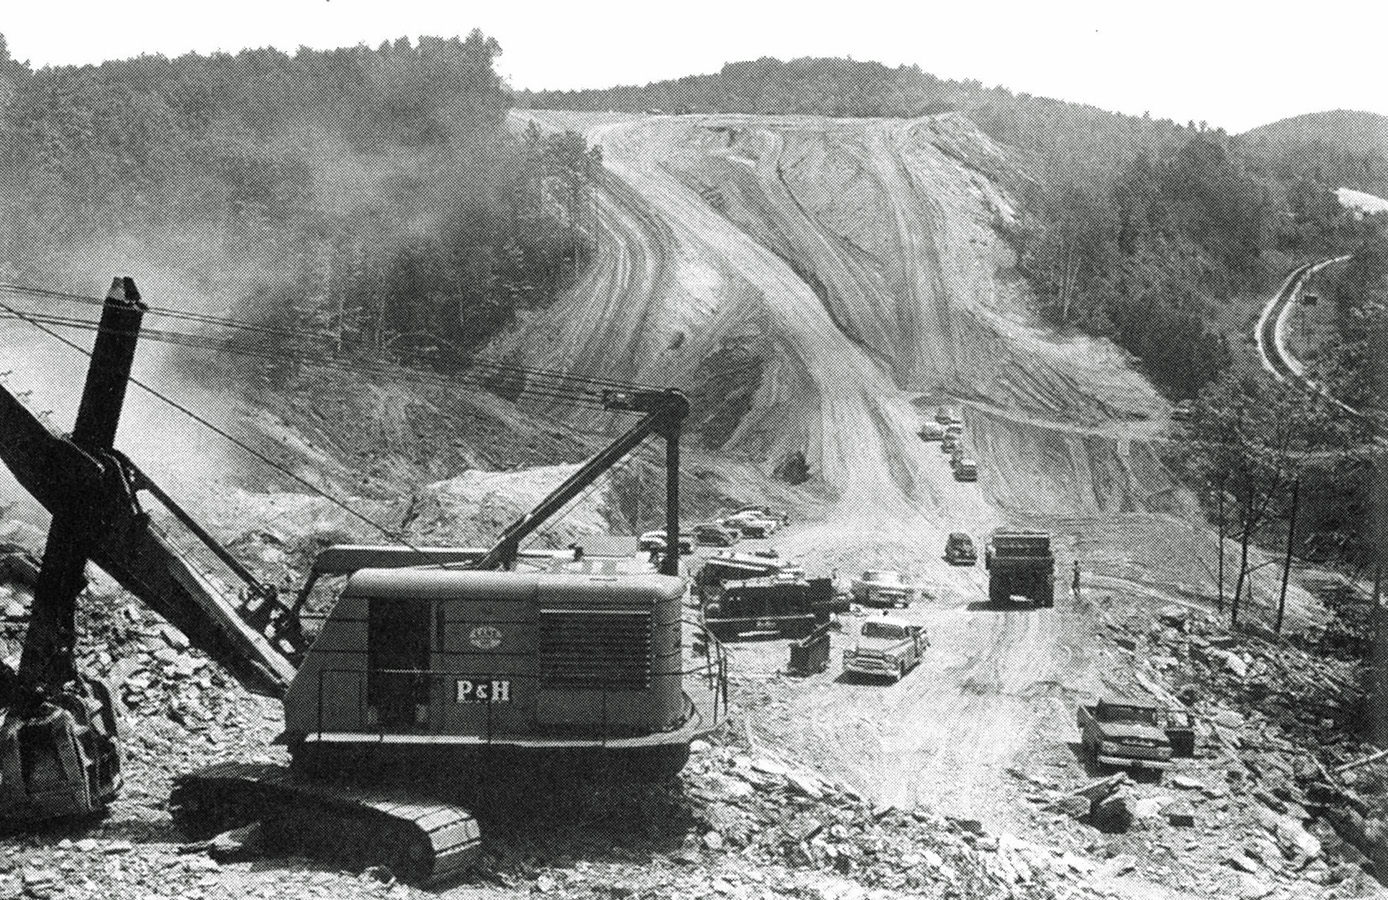 Historic photograph of a tractor in a construction zone.